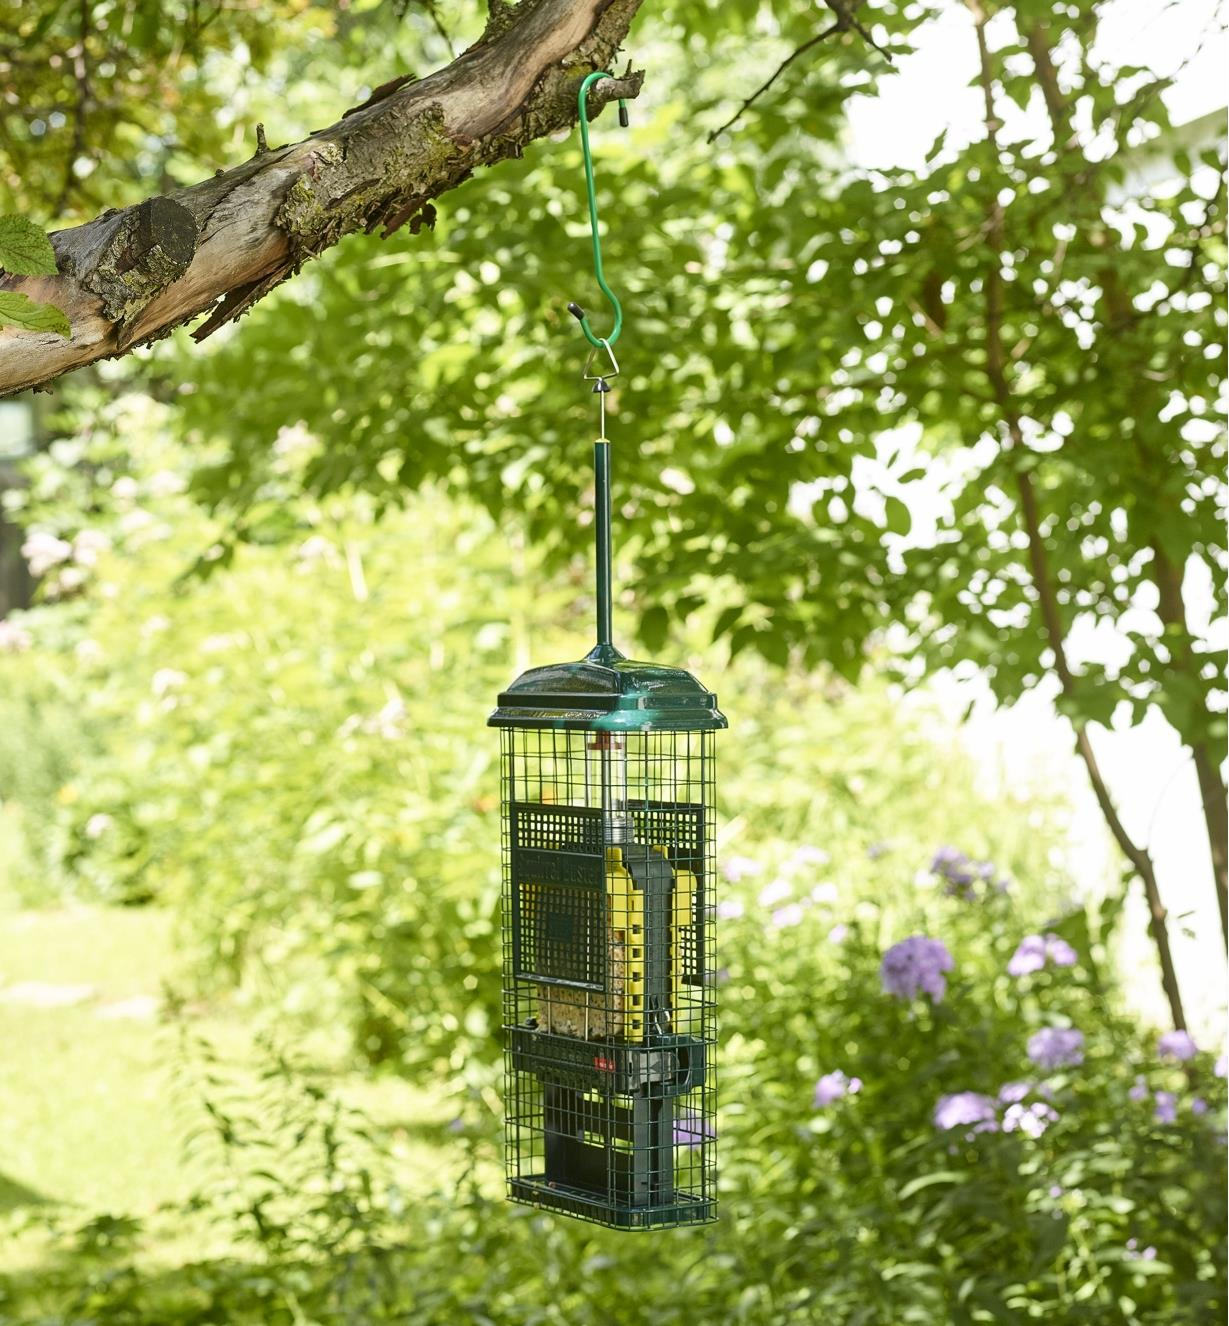 The Squirrel Buster suet feeder hung in a back yard